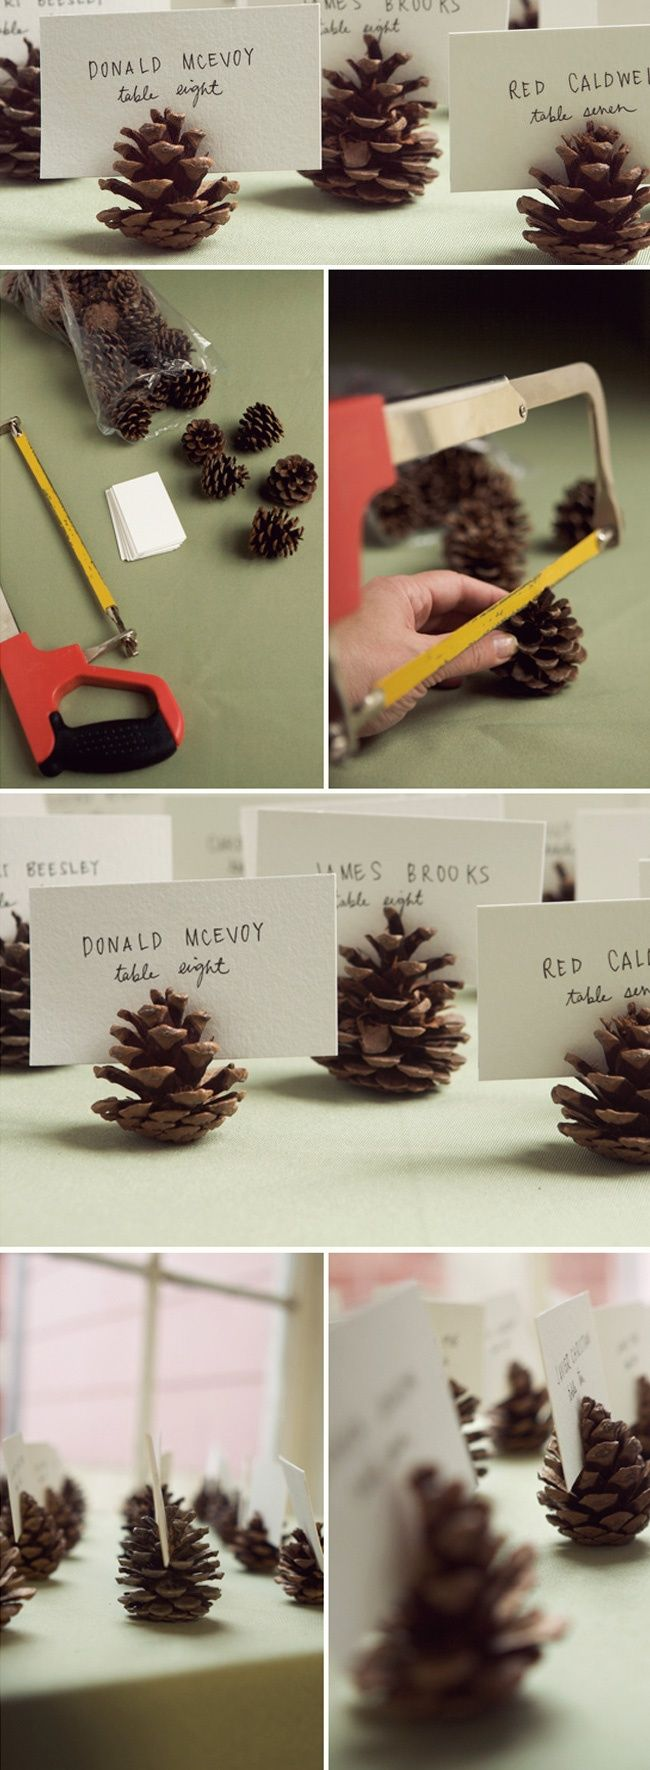 DIY pine cone place card holders